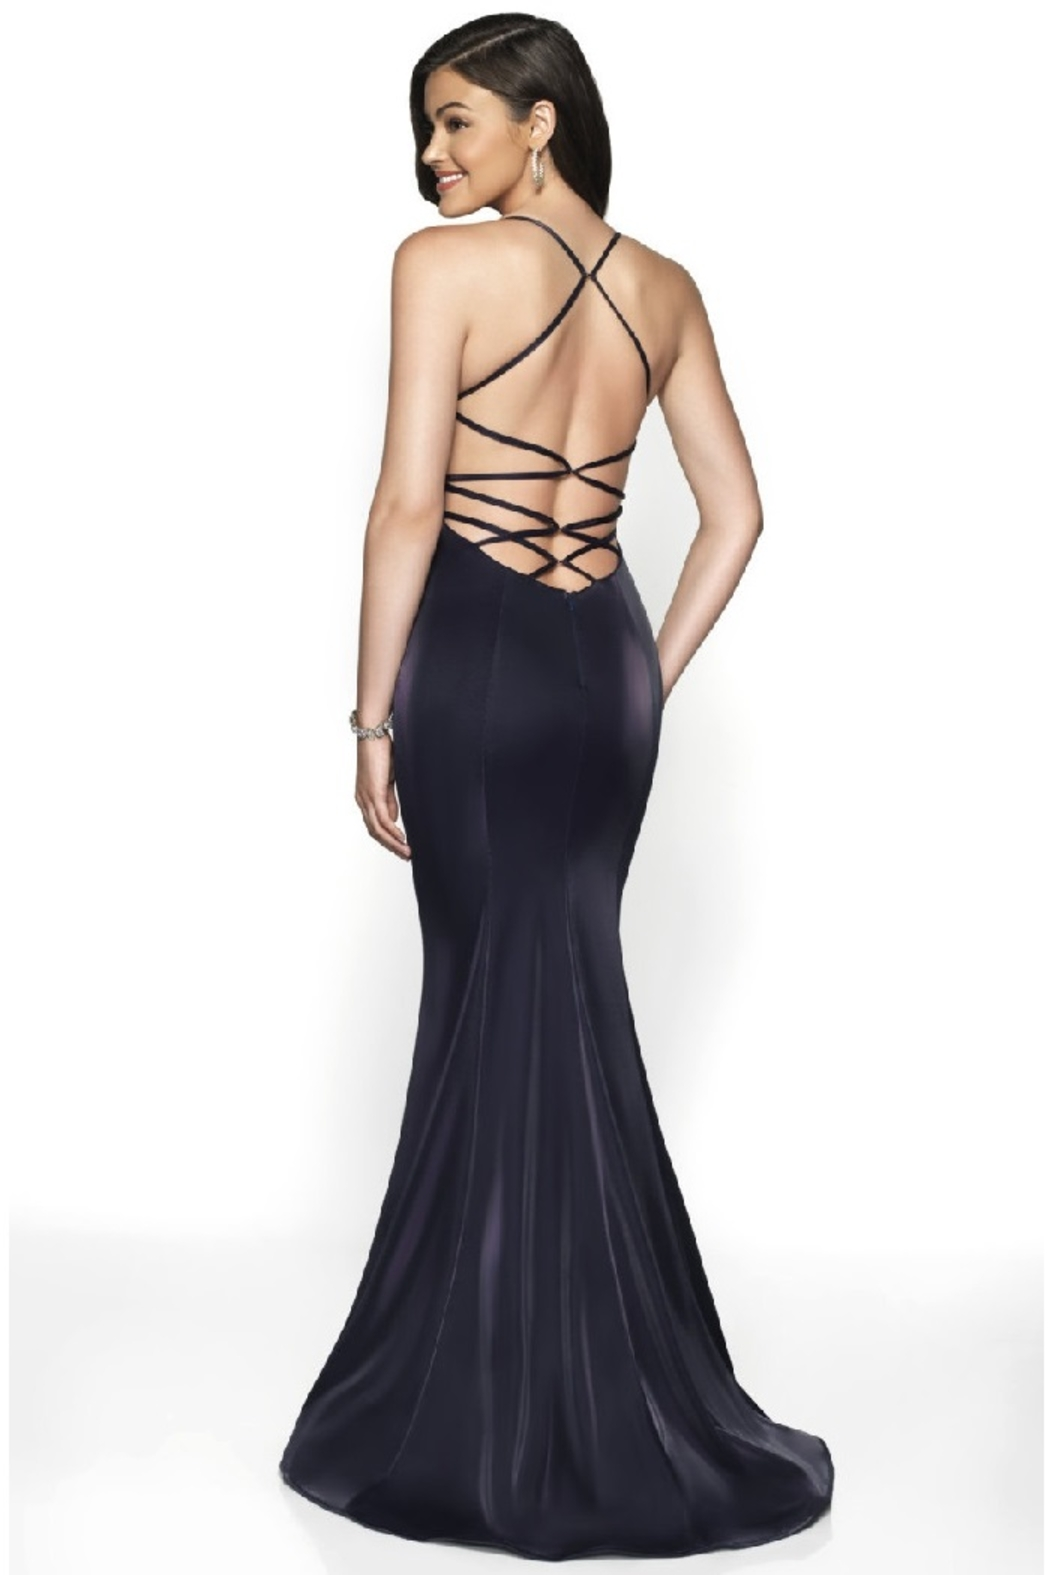 Flair New York Navy Metallic Fit & Flare Long Formal Dress - Front Full Image